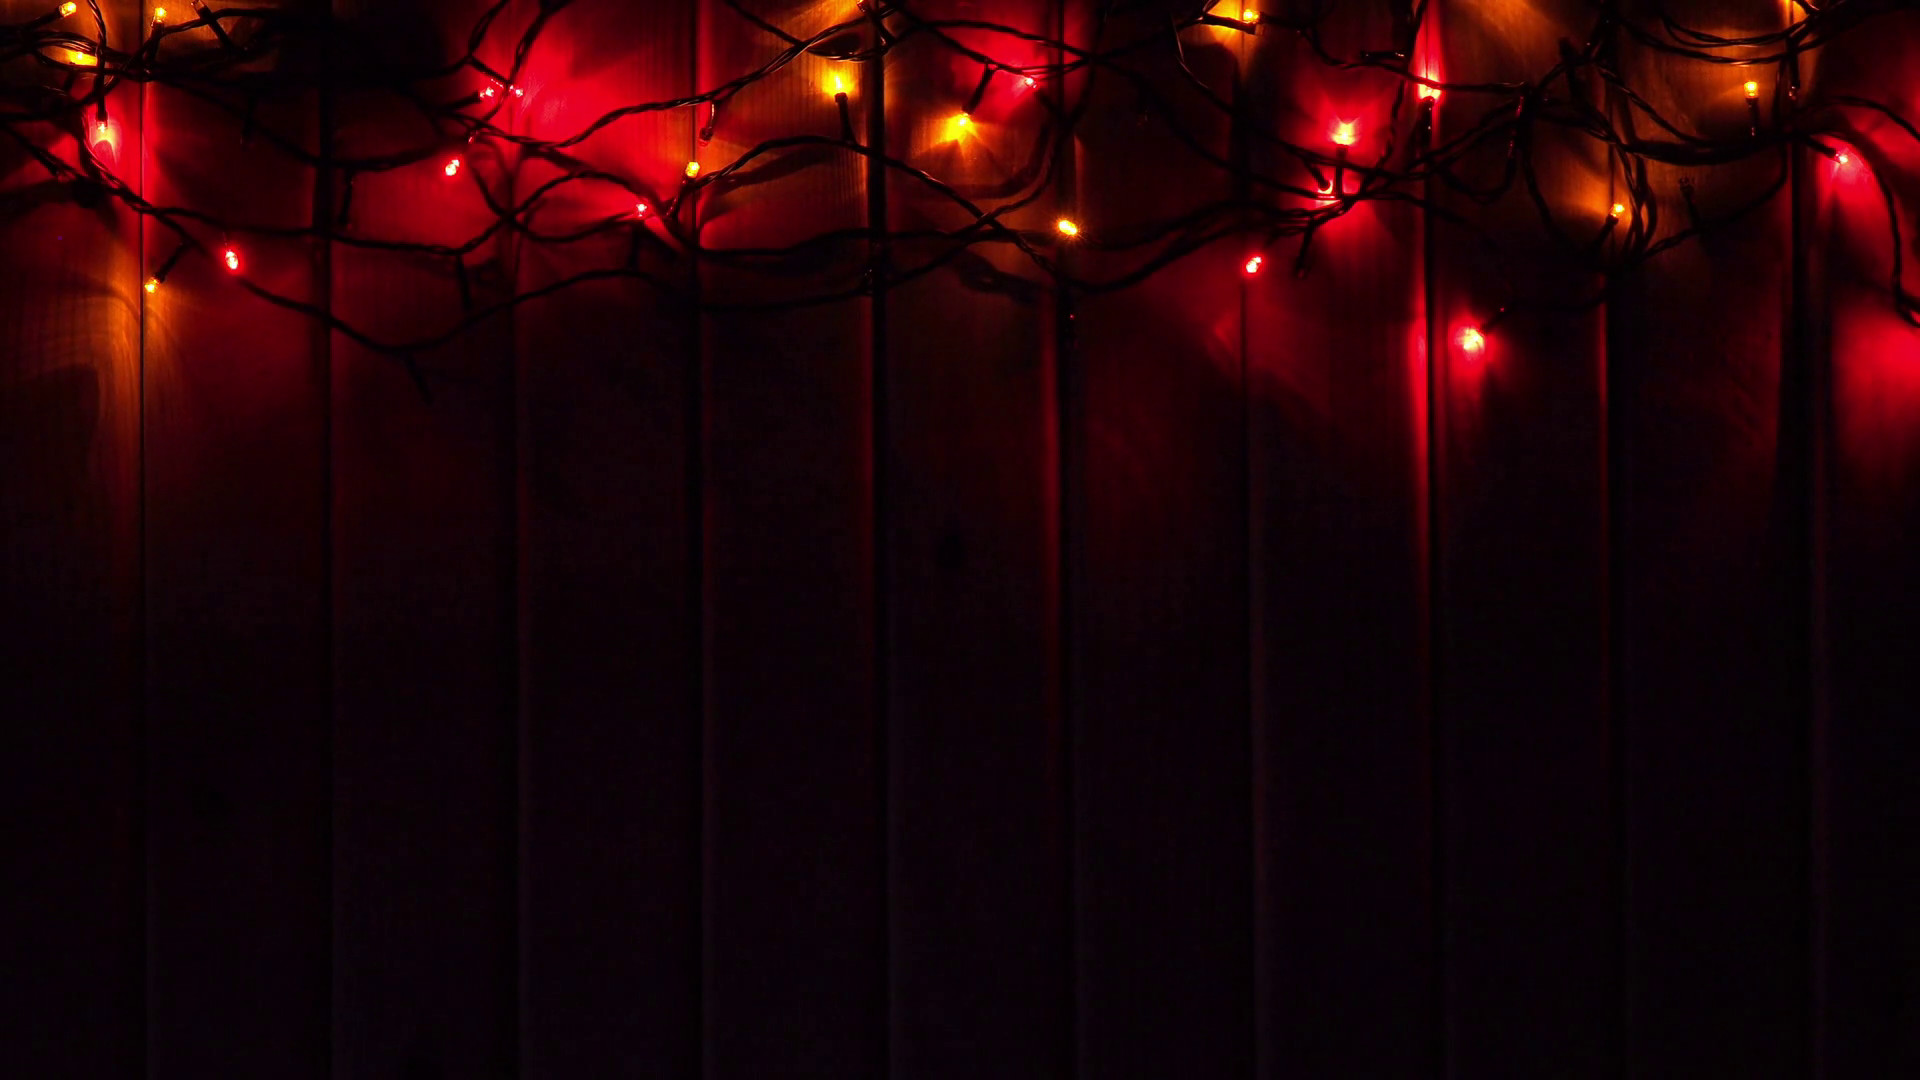 Christmas Light Background 45 Images